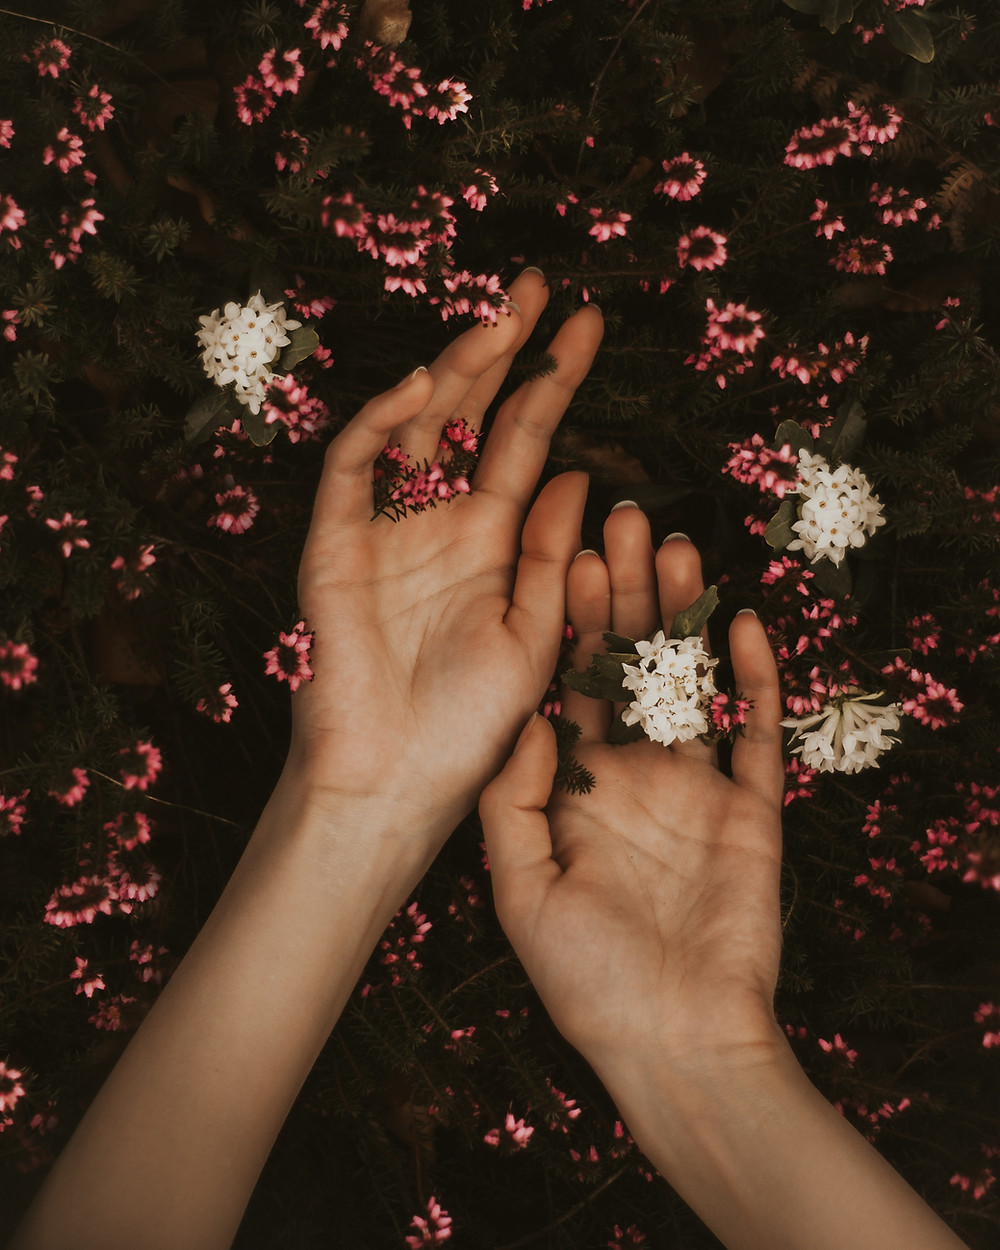 a picture of hands slightly holding flowers, open palms, self care, self love, self reflection, spiritual